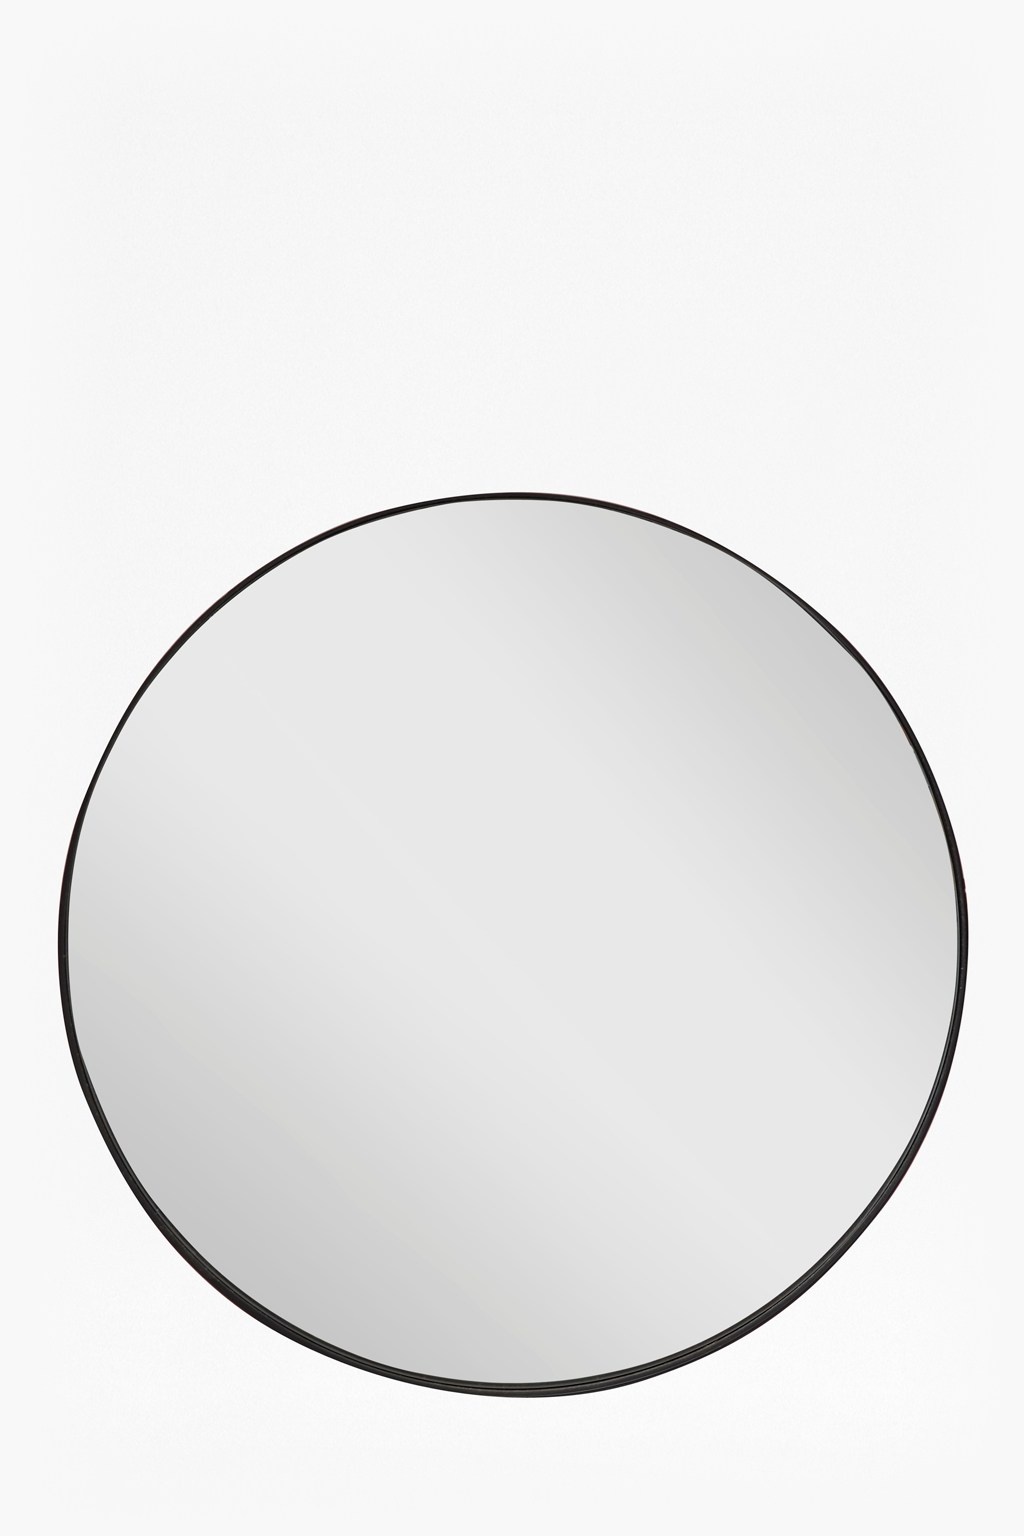 Large Round Mirror Loading Images